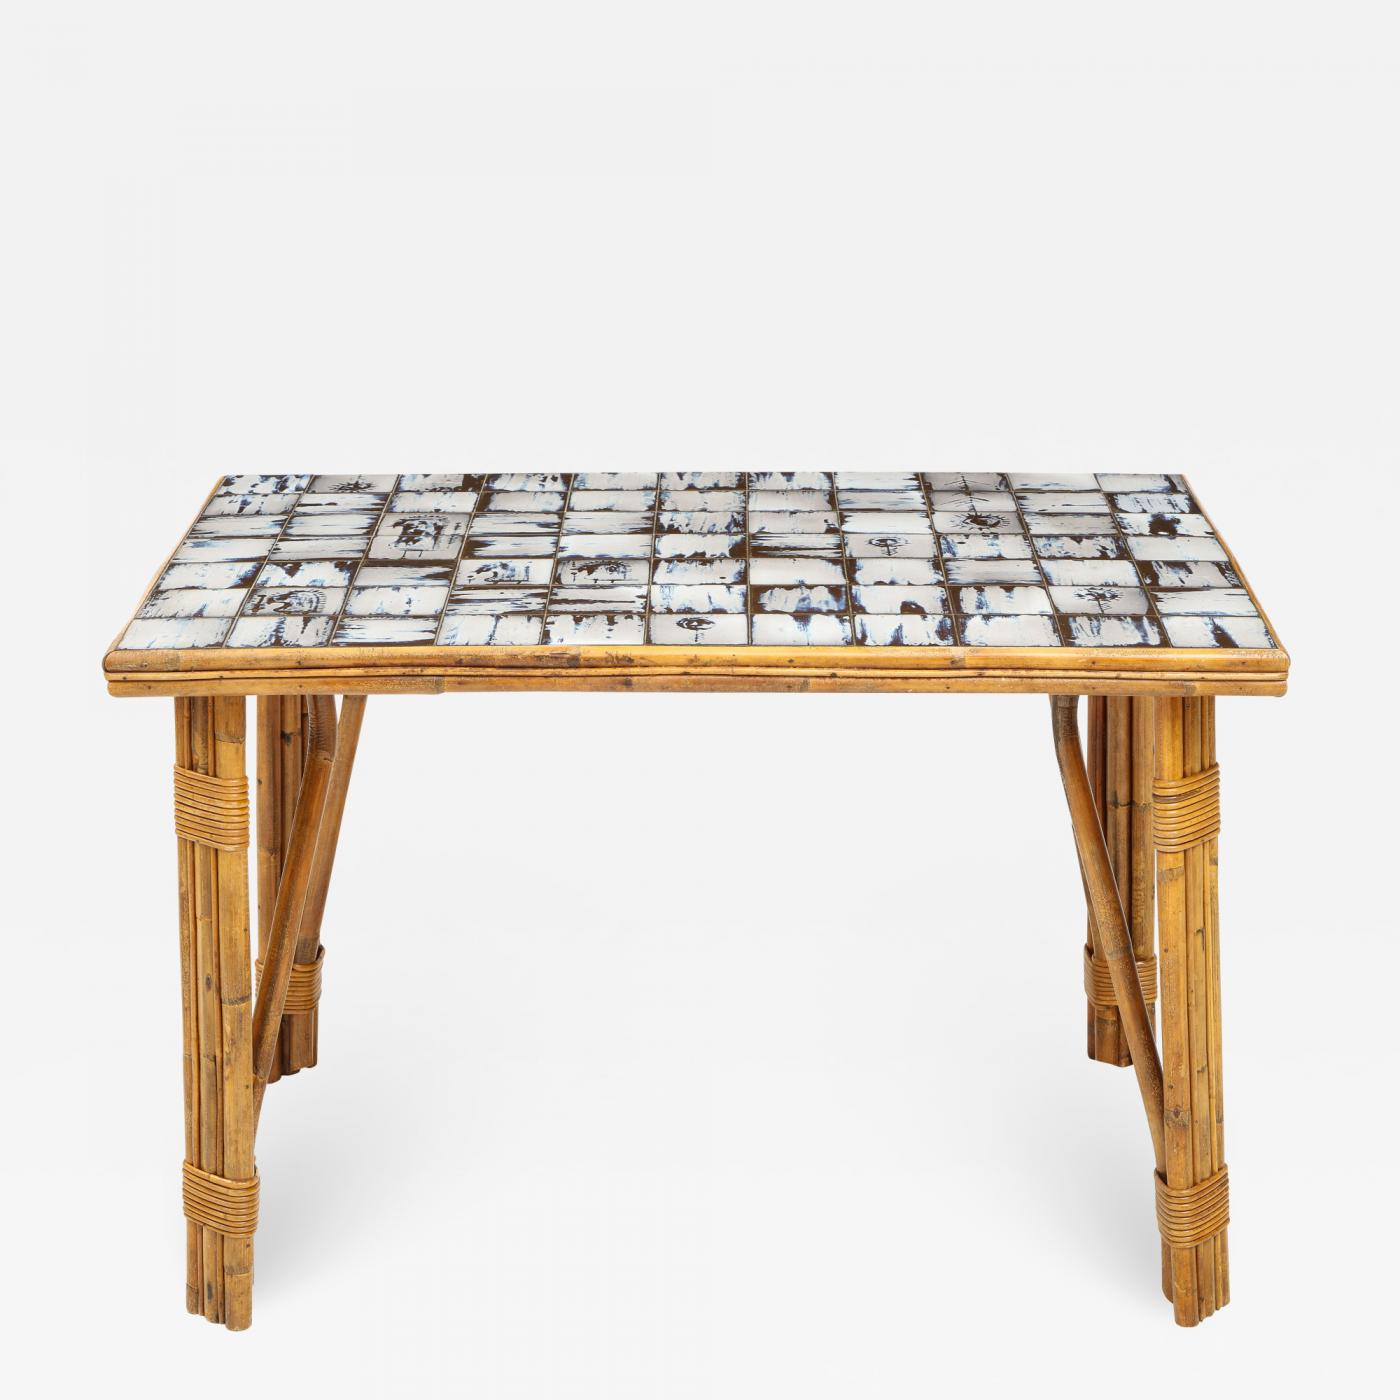 Rattan Dining Table with a Ceramic Tile Top, France, c. 9